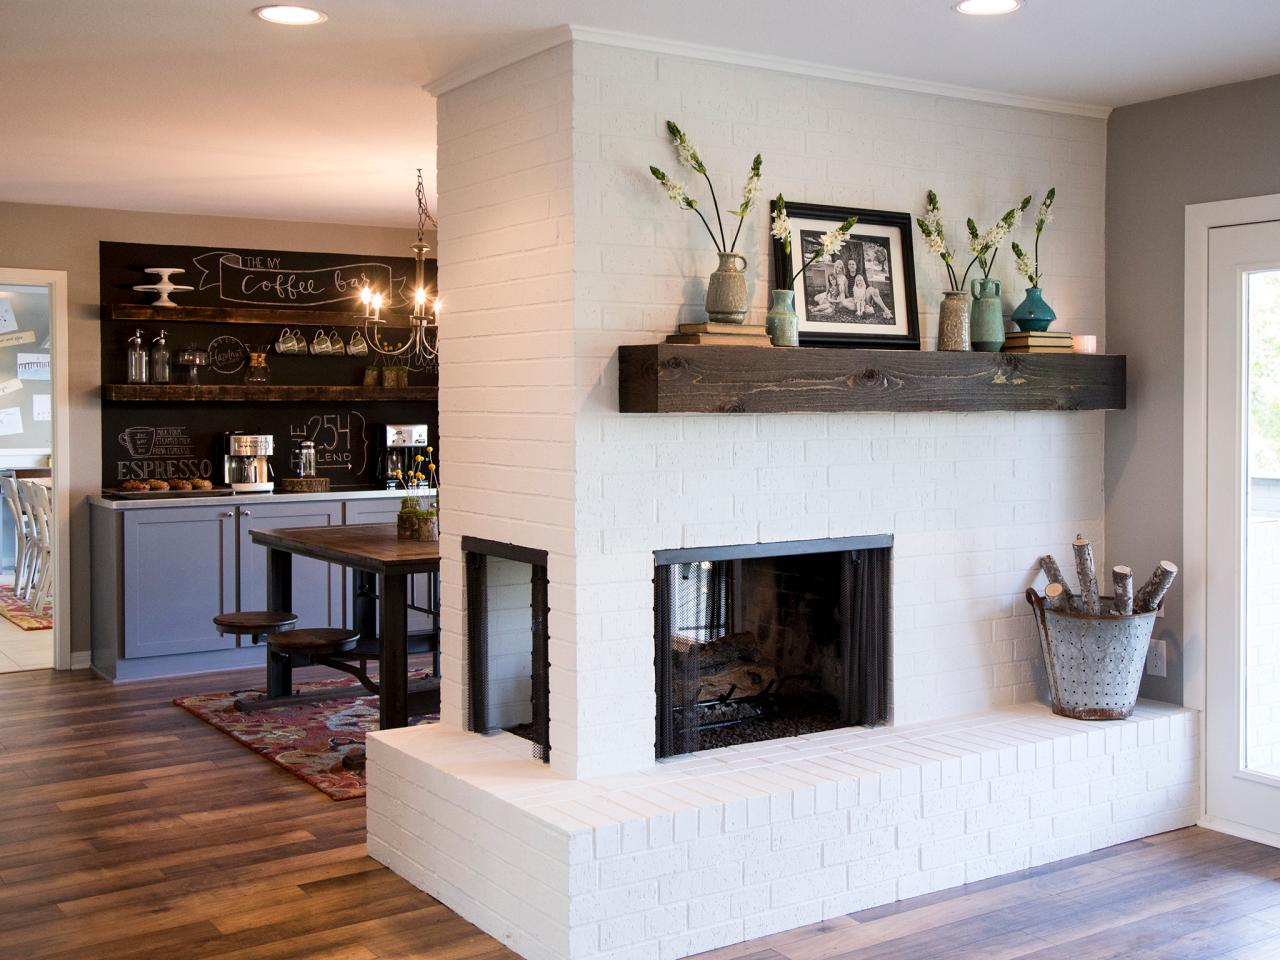 HGTV.com shares 15 beautiful painted brick fireplaces for every design style.